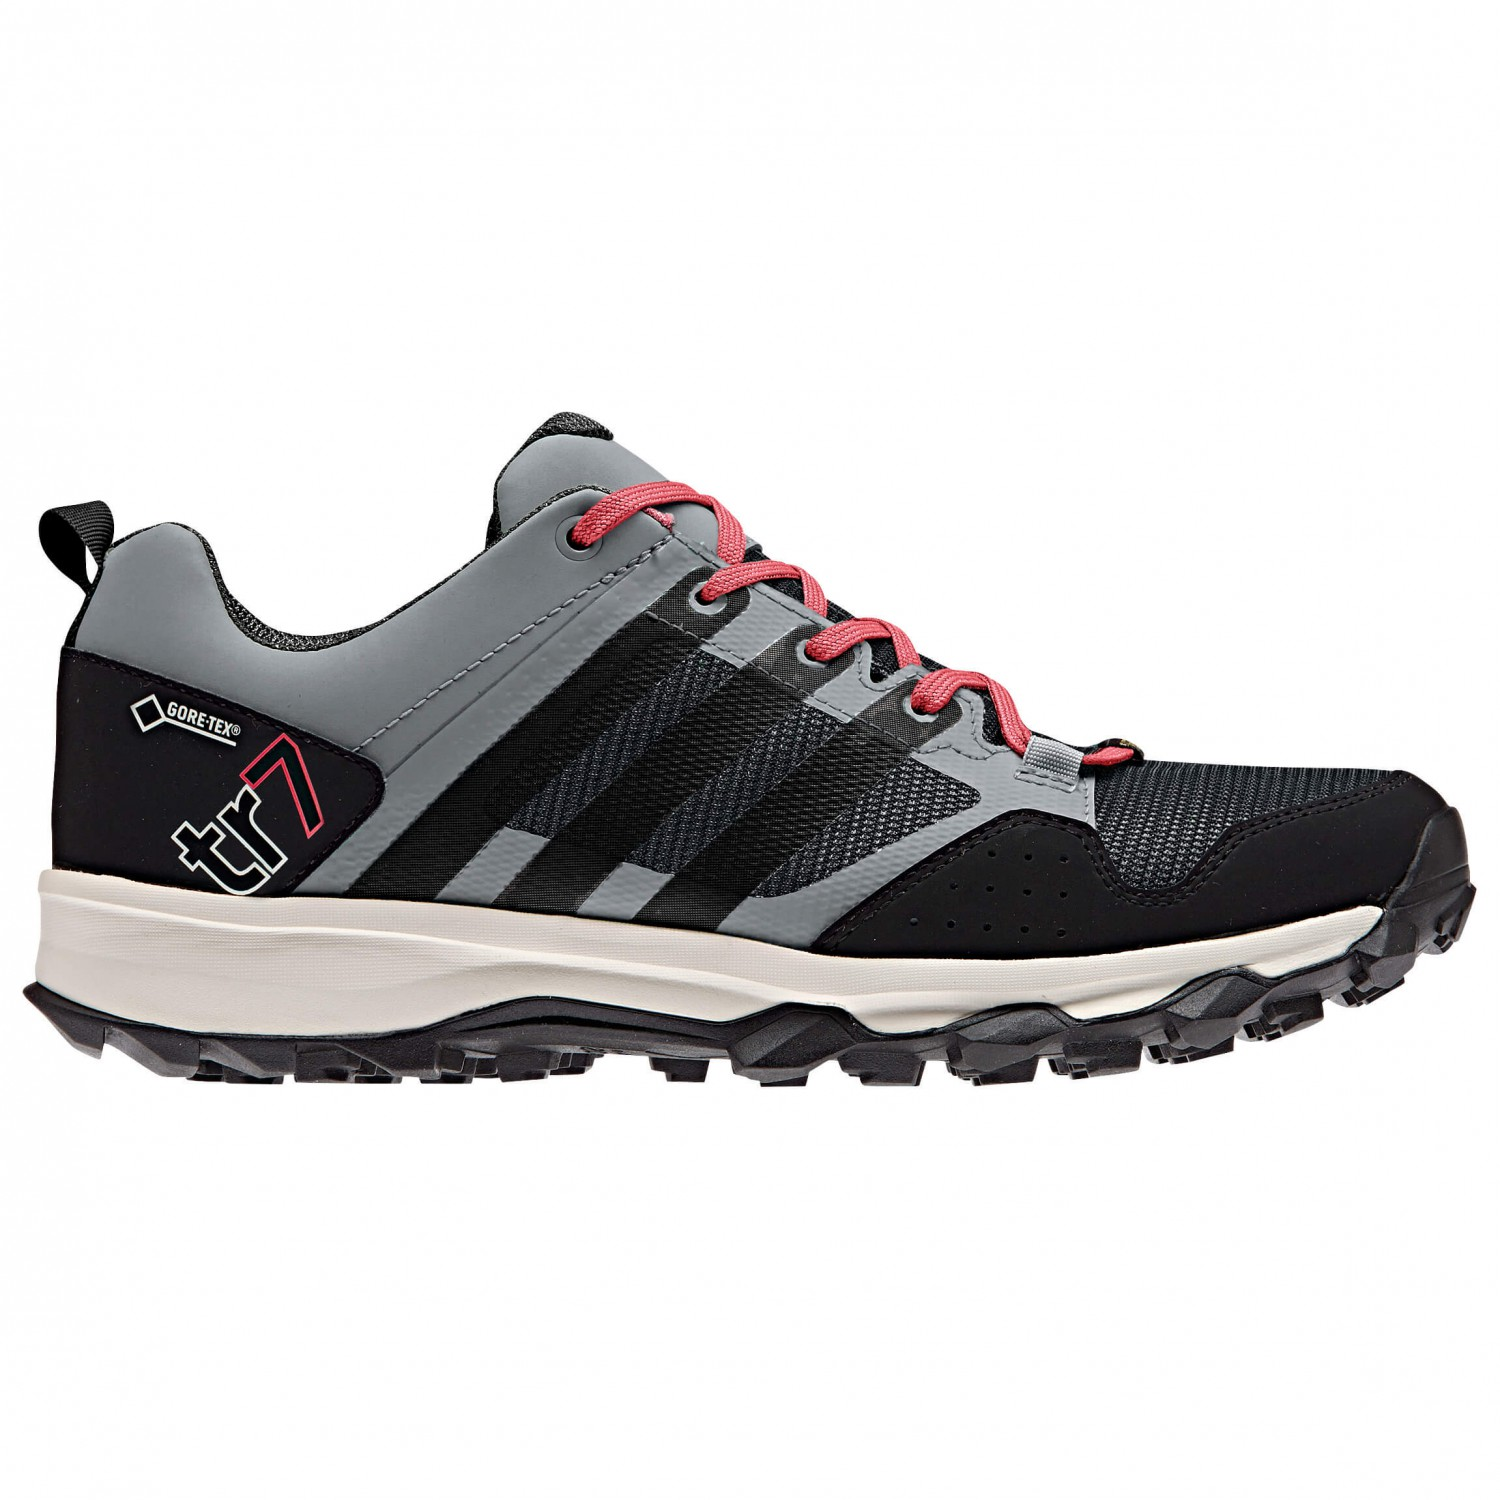 ... adidas - Women s Kanadia 7 Tr GTX - Trail running shoes ... 773ffebef